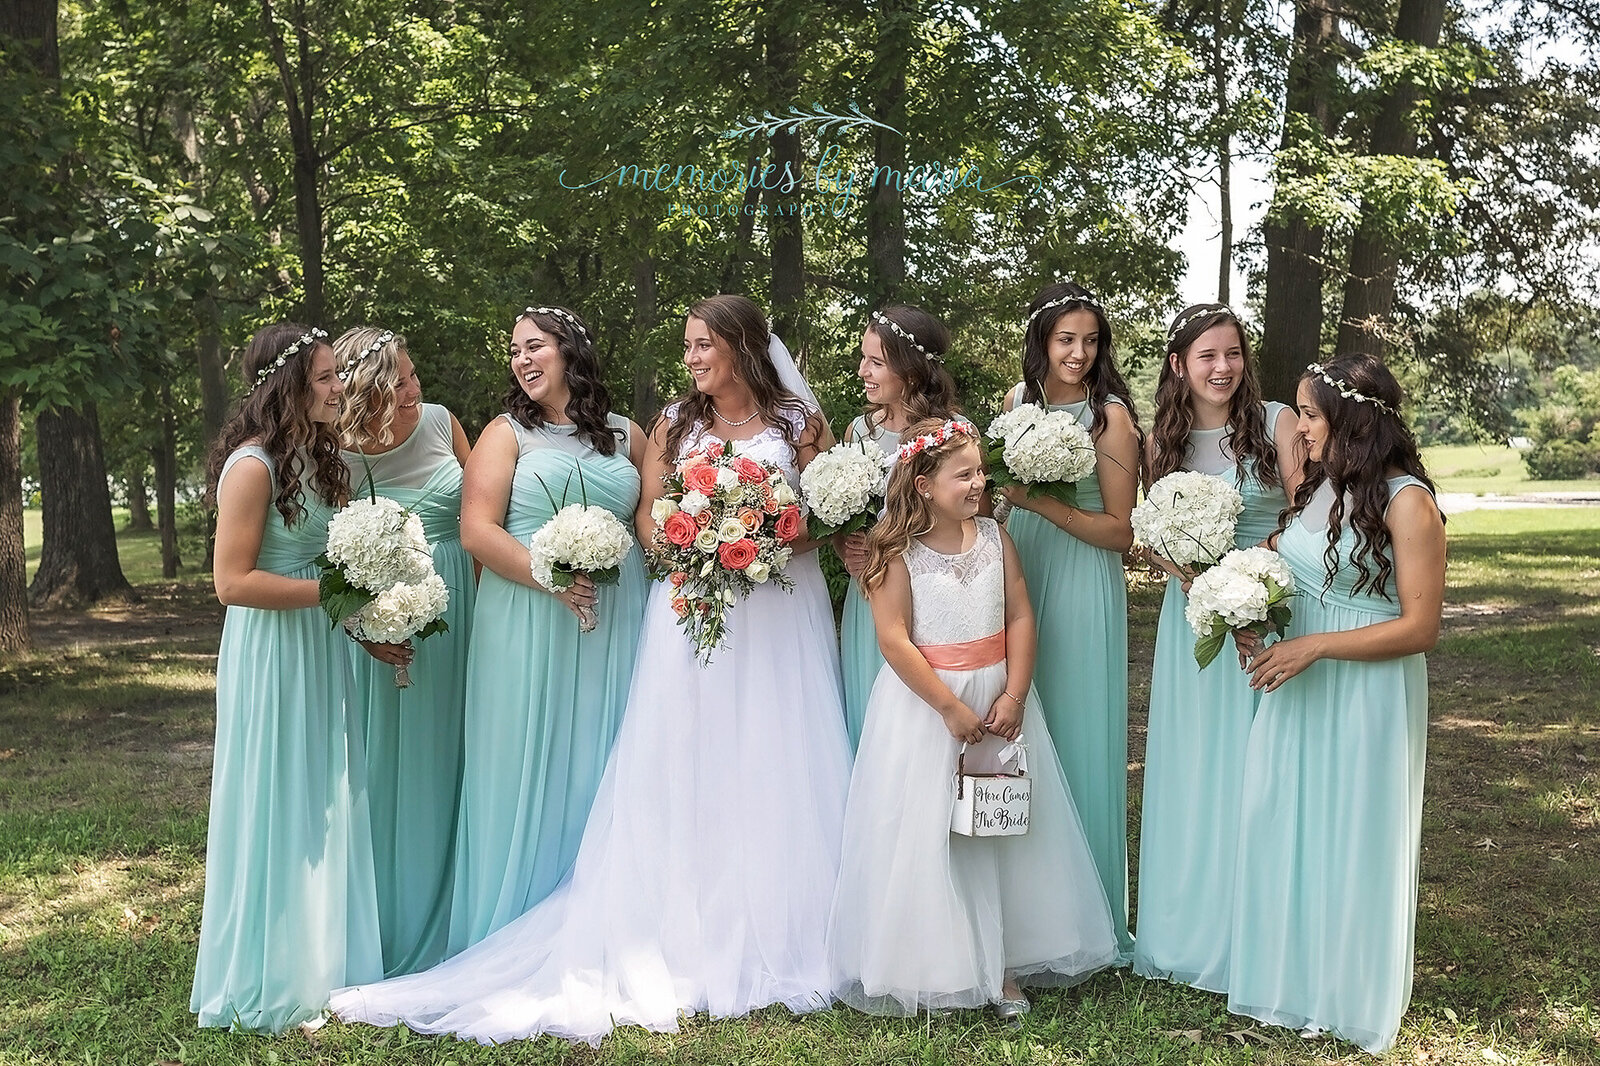 bridal party smiling The estate at monroe williamstown nj